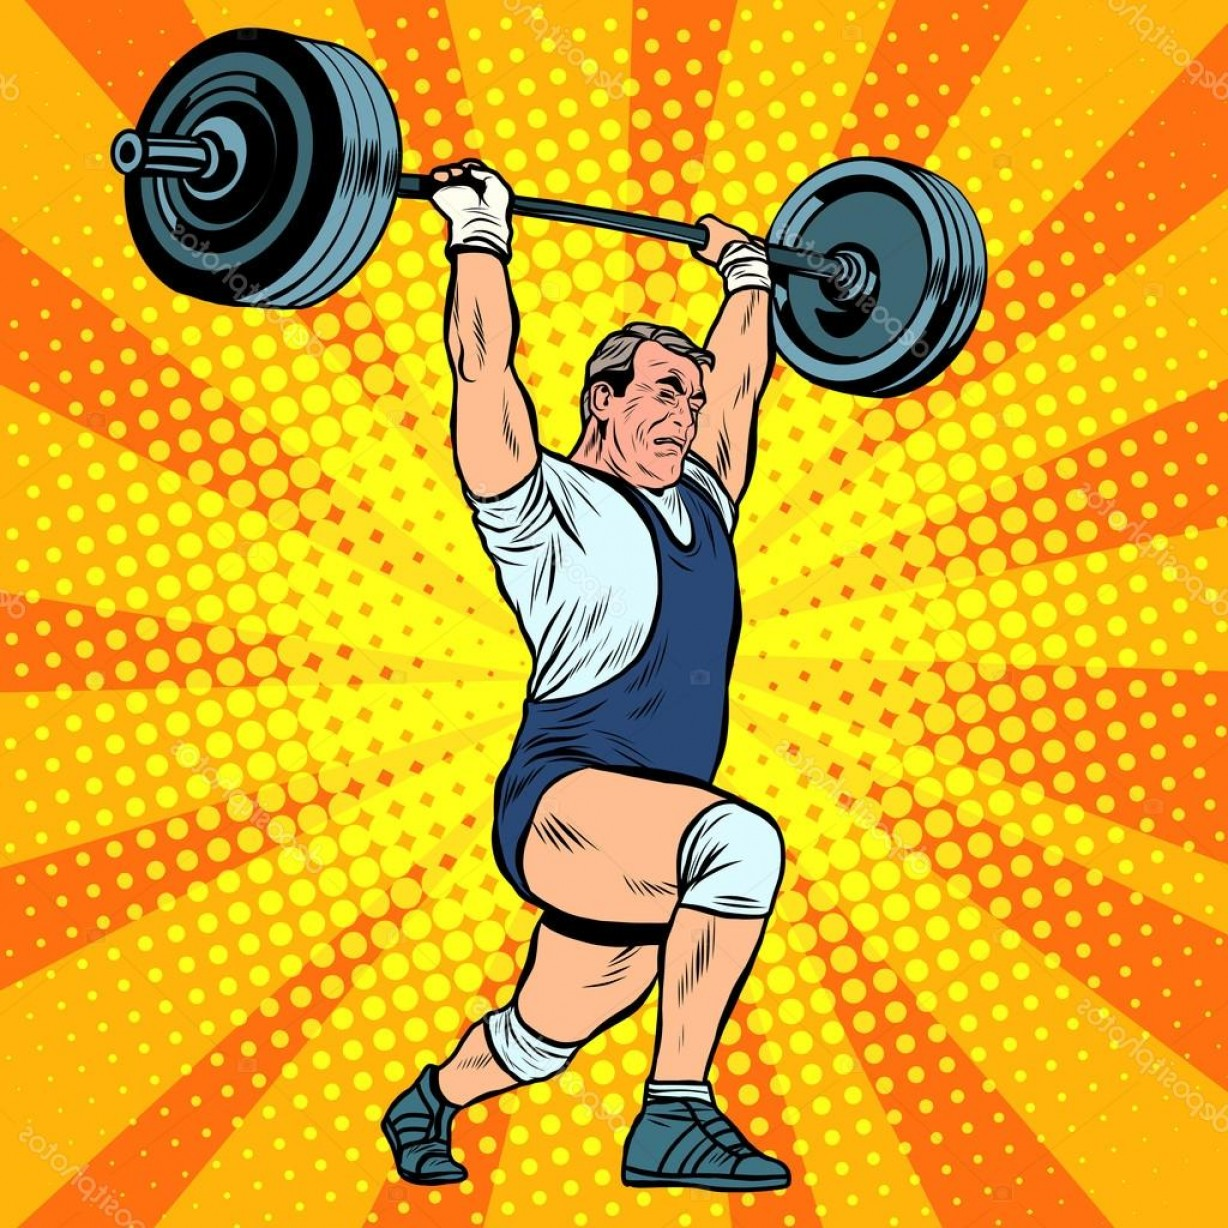 Weightlifter Vector Art: Stock Illustration Weightlifting A Weightlifter Raises The